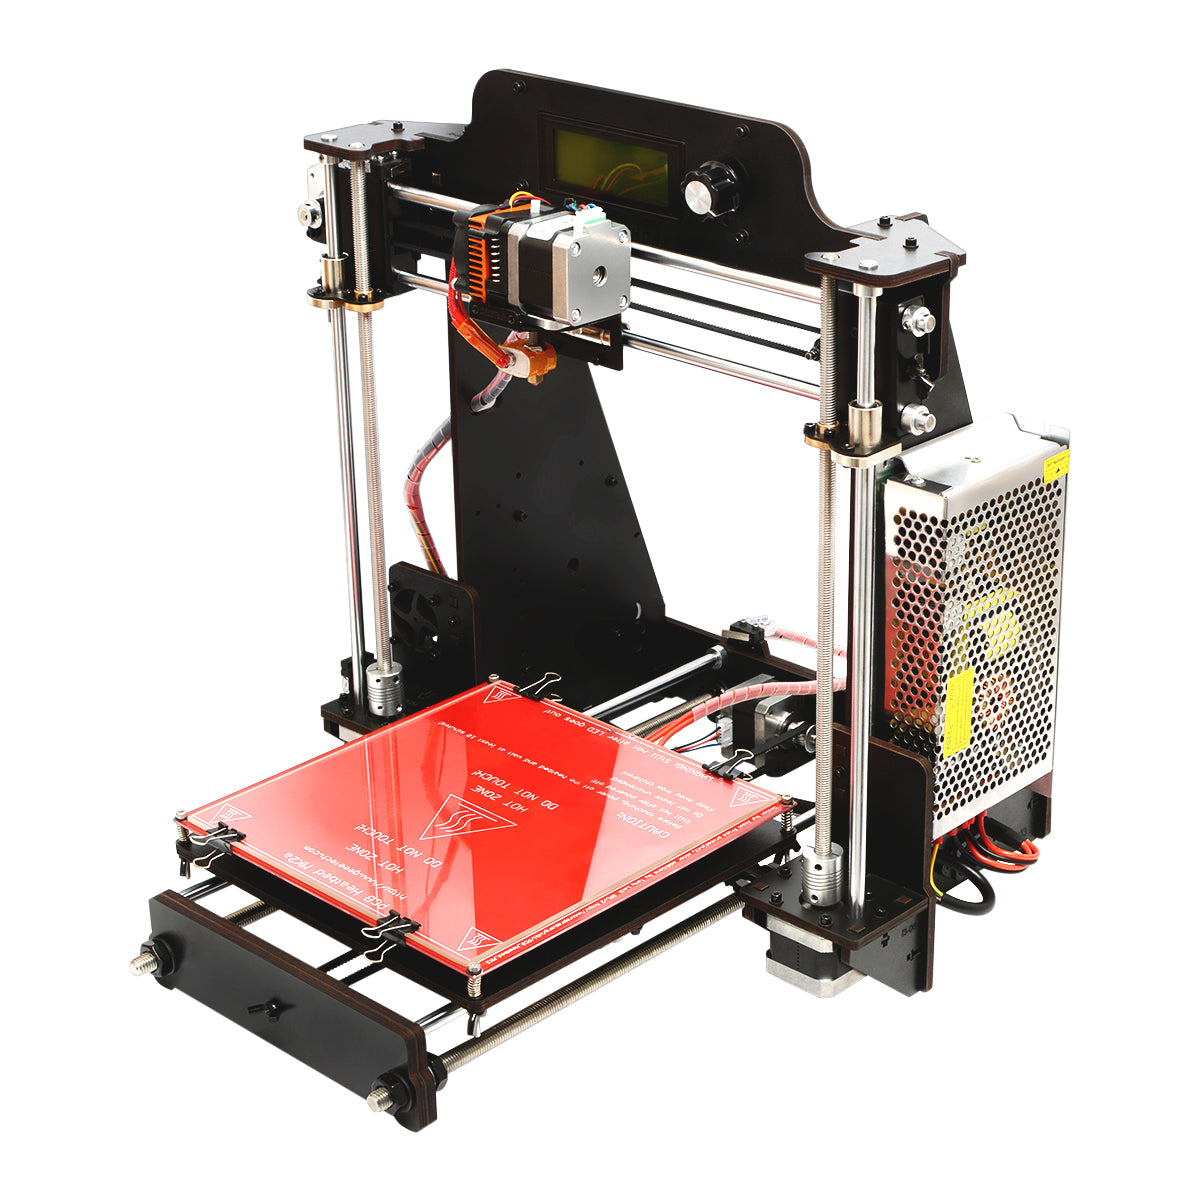 Geeetech® Prusa I3 Pro W DIY 3D Printer 200x200x180mm Printing Size 1.75mm 0.3mm Nozzle